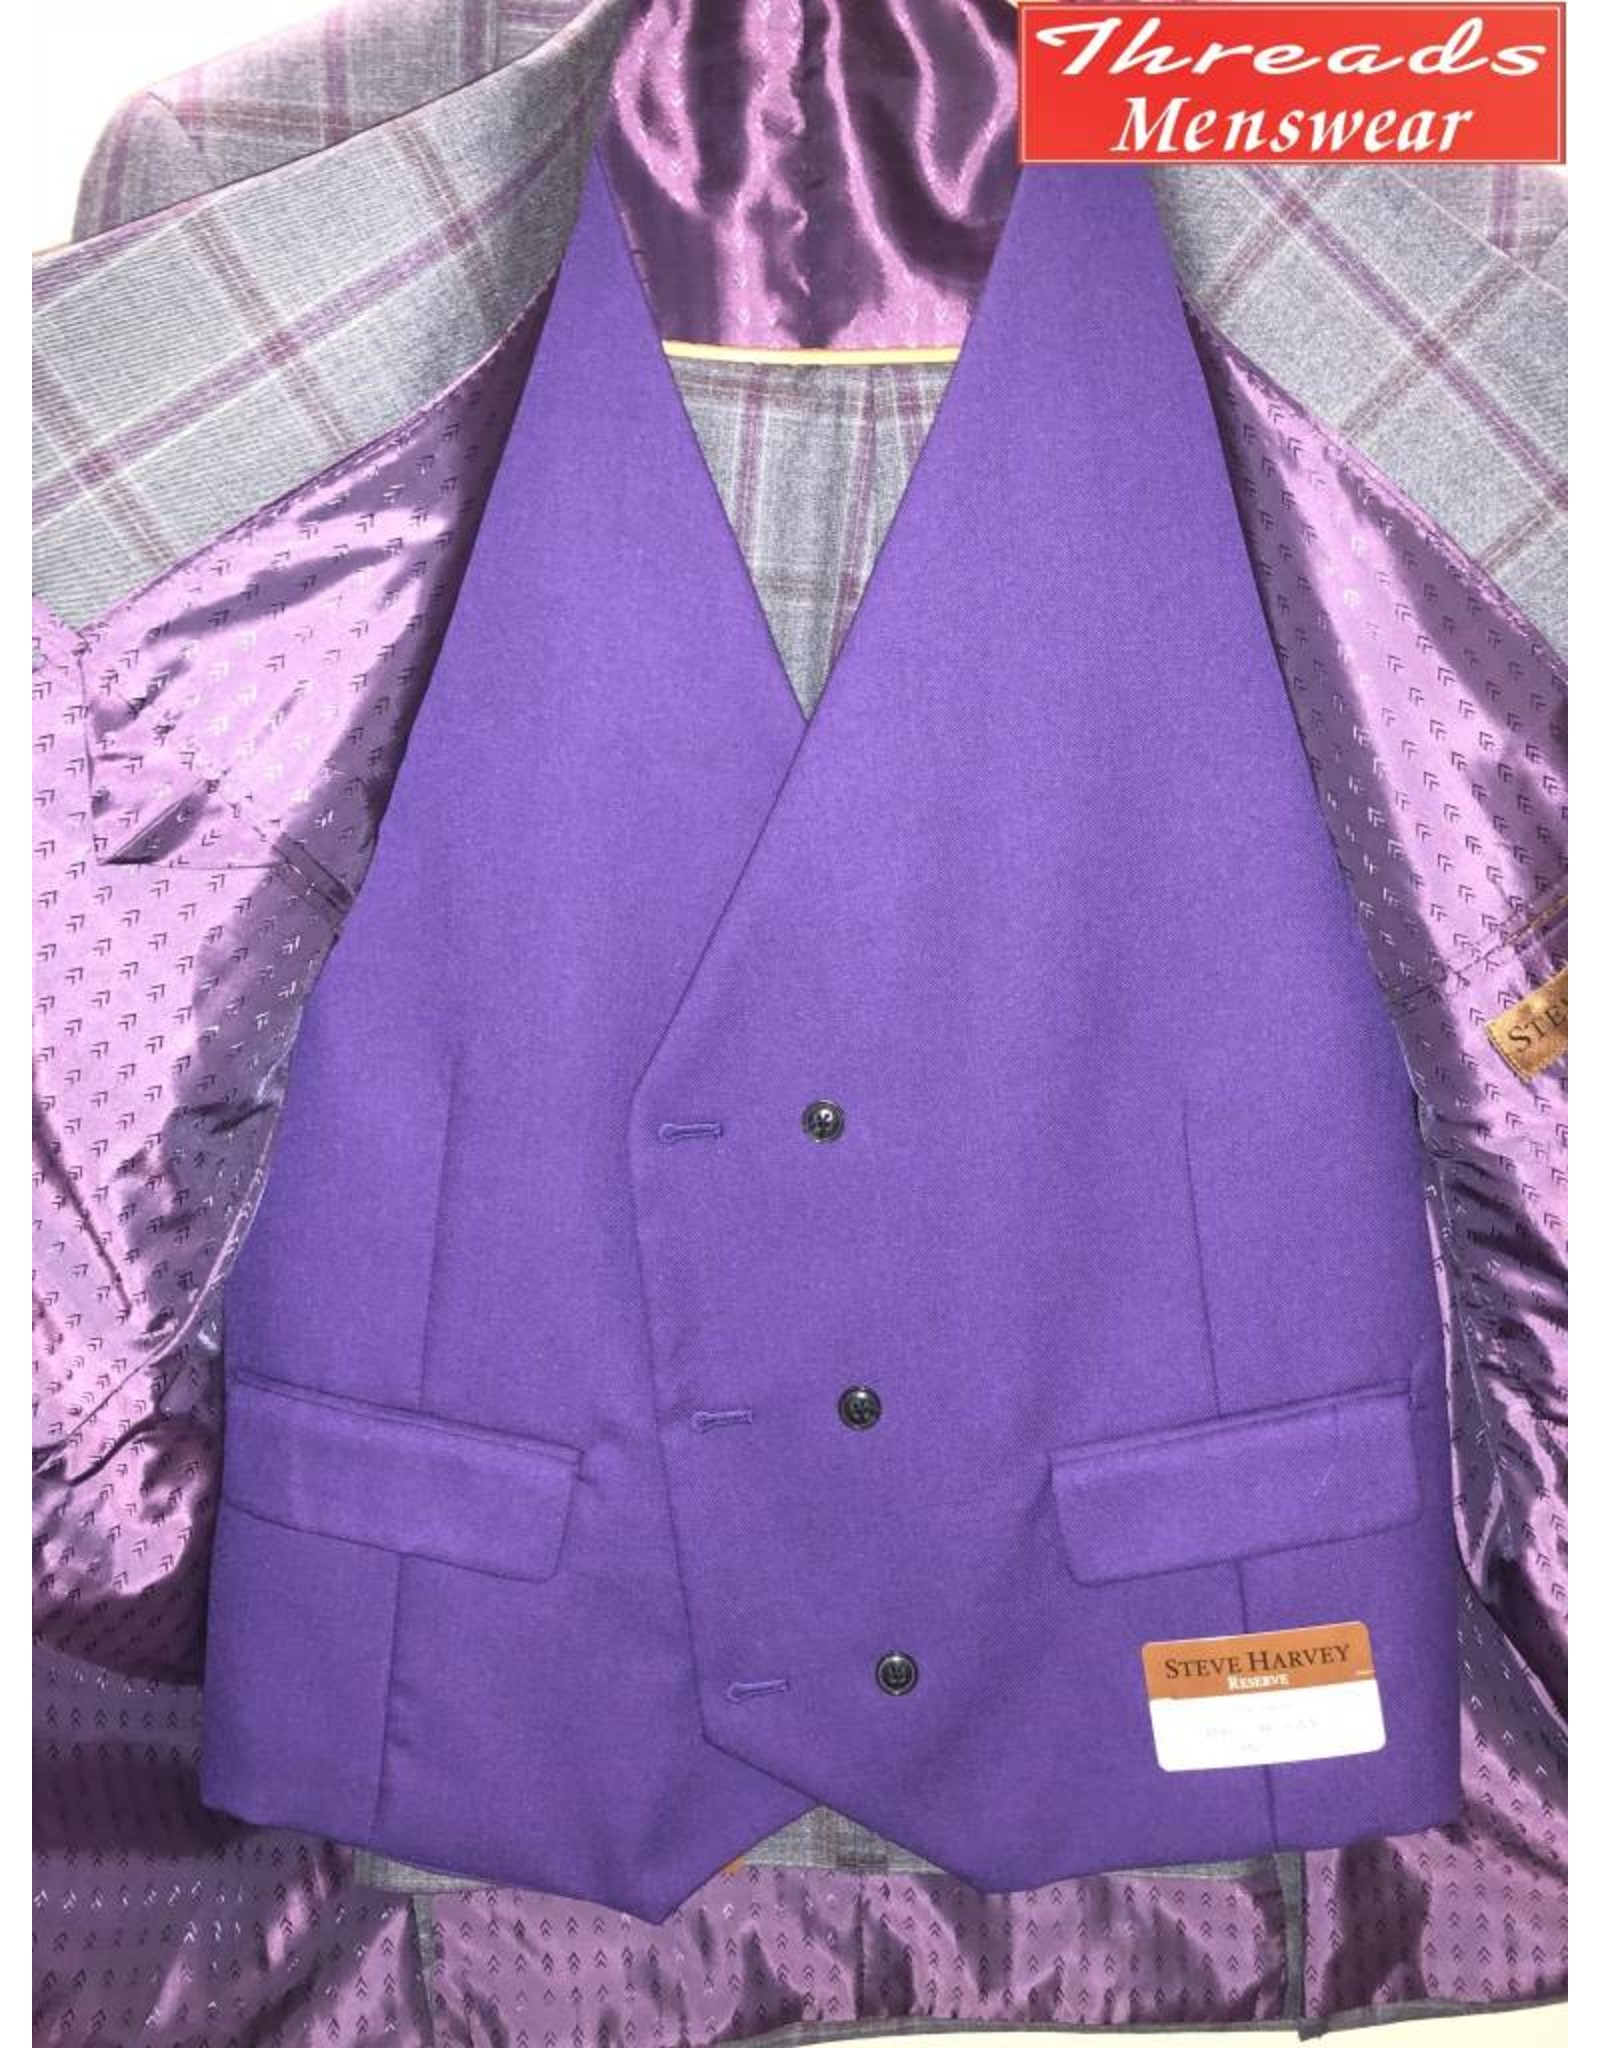 Steve Harvey Steve Harvey Vested Suit - Gray/Lavendar (Purple Vest)